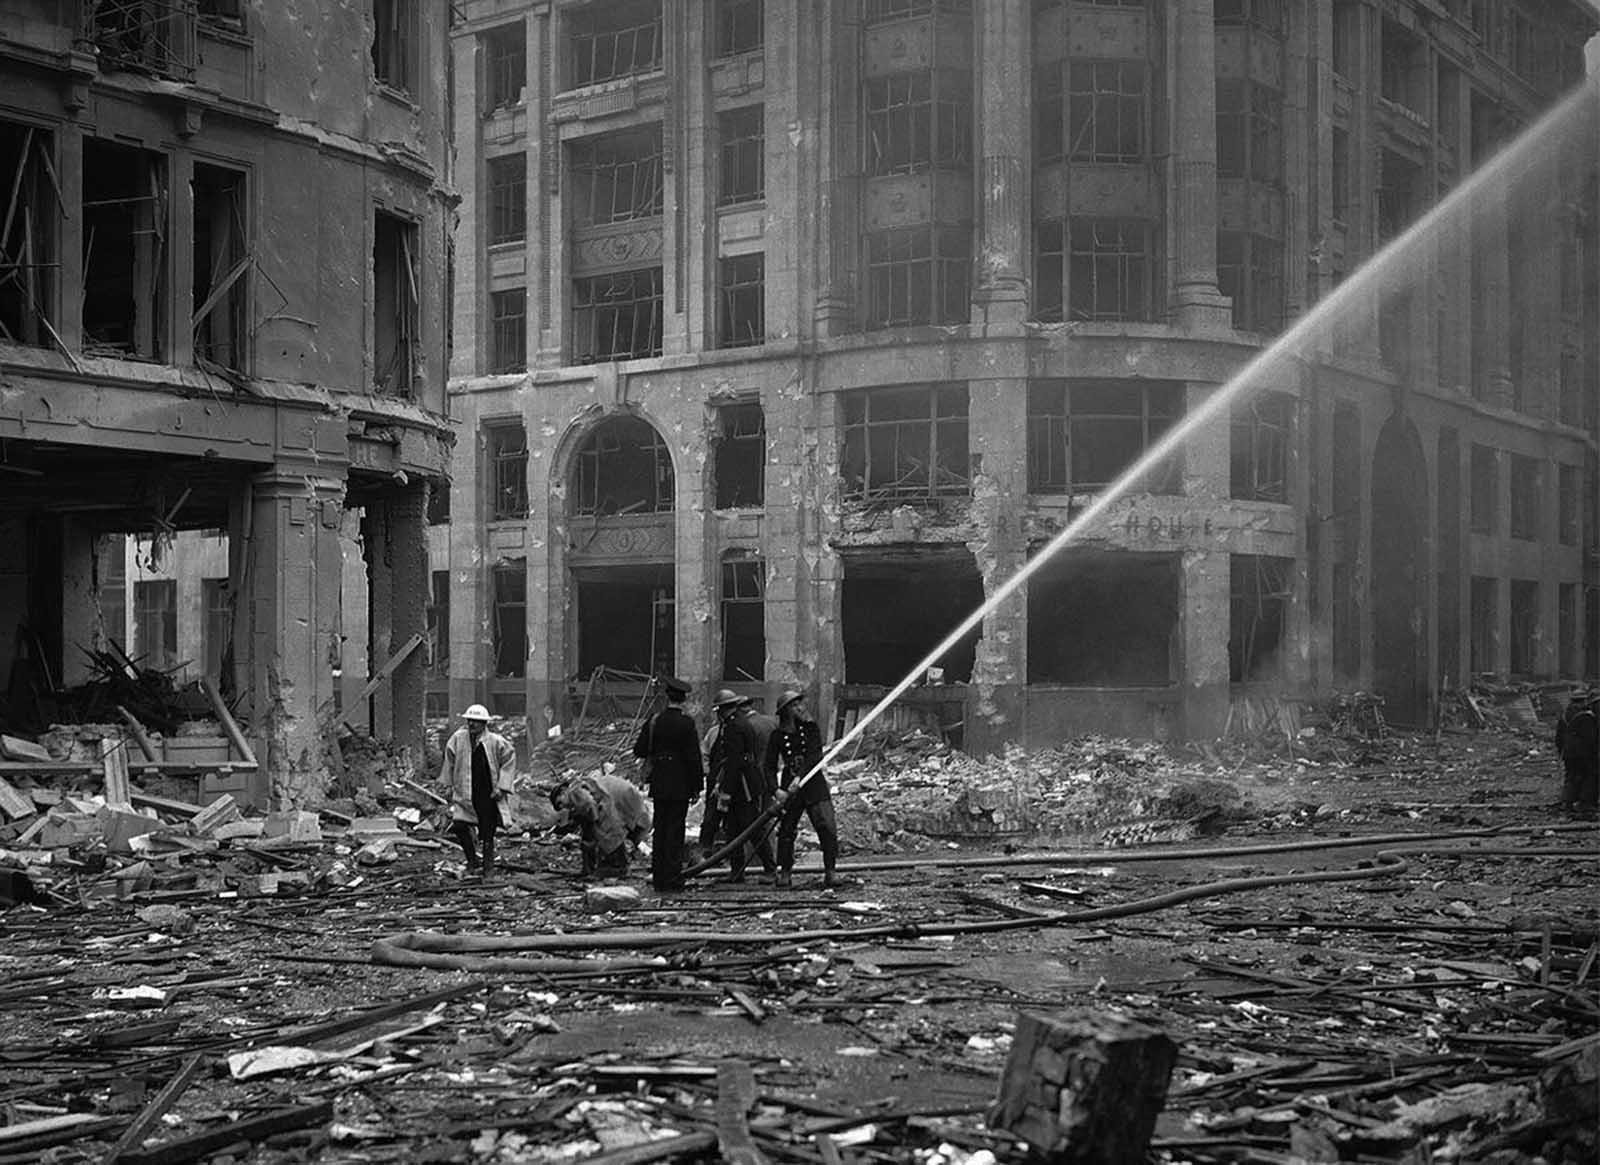 Firemen spray water on damaged buildings, near London Bridge, in the City of London on September 9, 1940, after a recent set of weekend air raids.